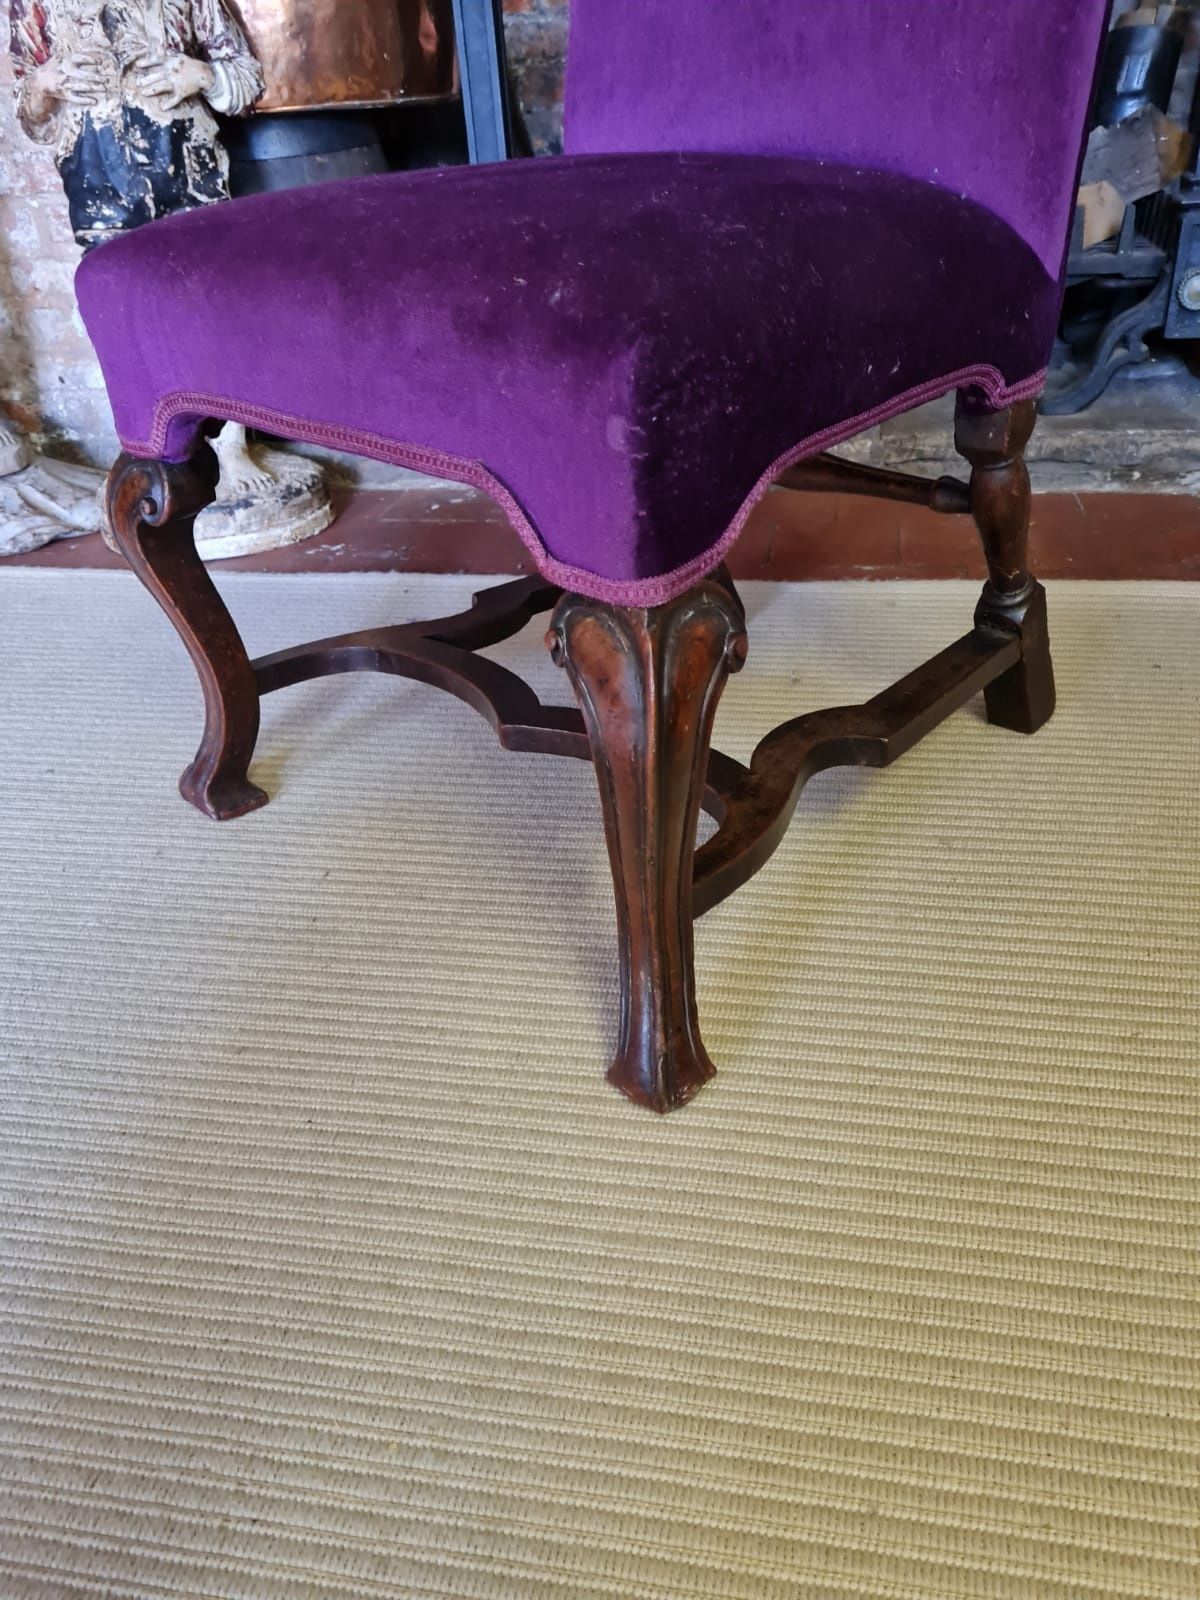 AN 18TH CENTURY WALNUT STANDARD CHAIR Upholstered in a purple fabric, raised on square cabriole legs - Image 3 of 3